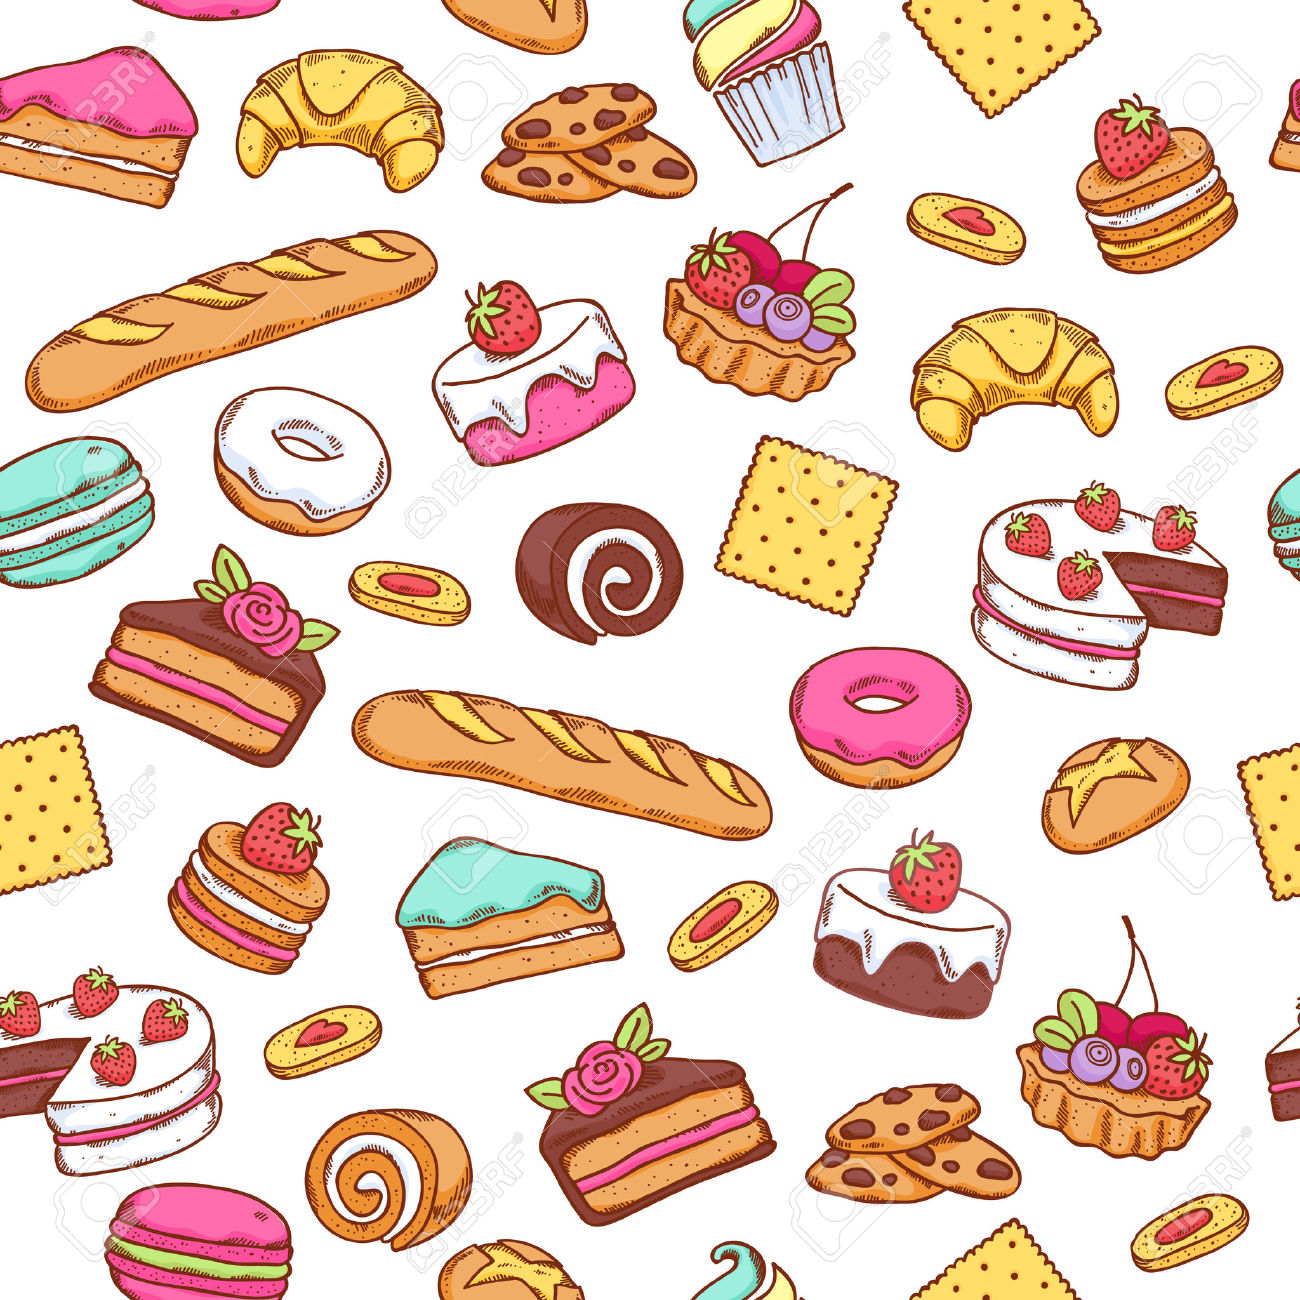 Baking clipart background.  collection of high